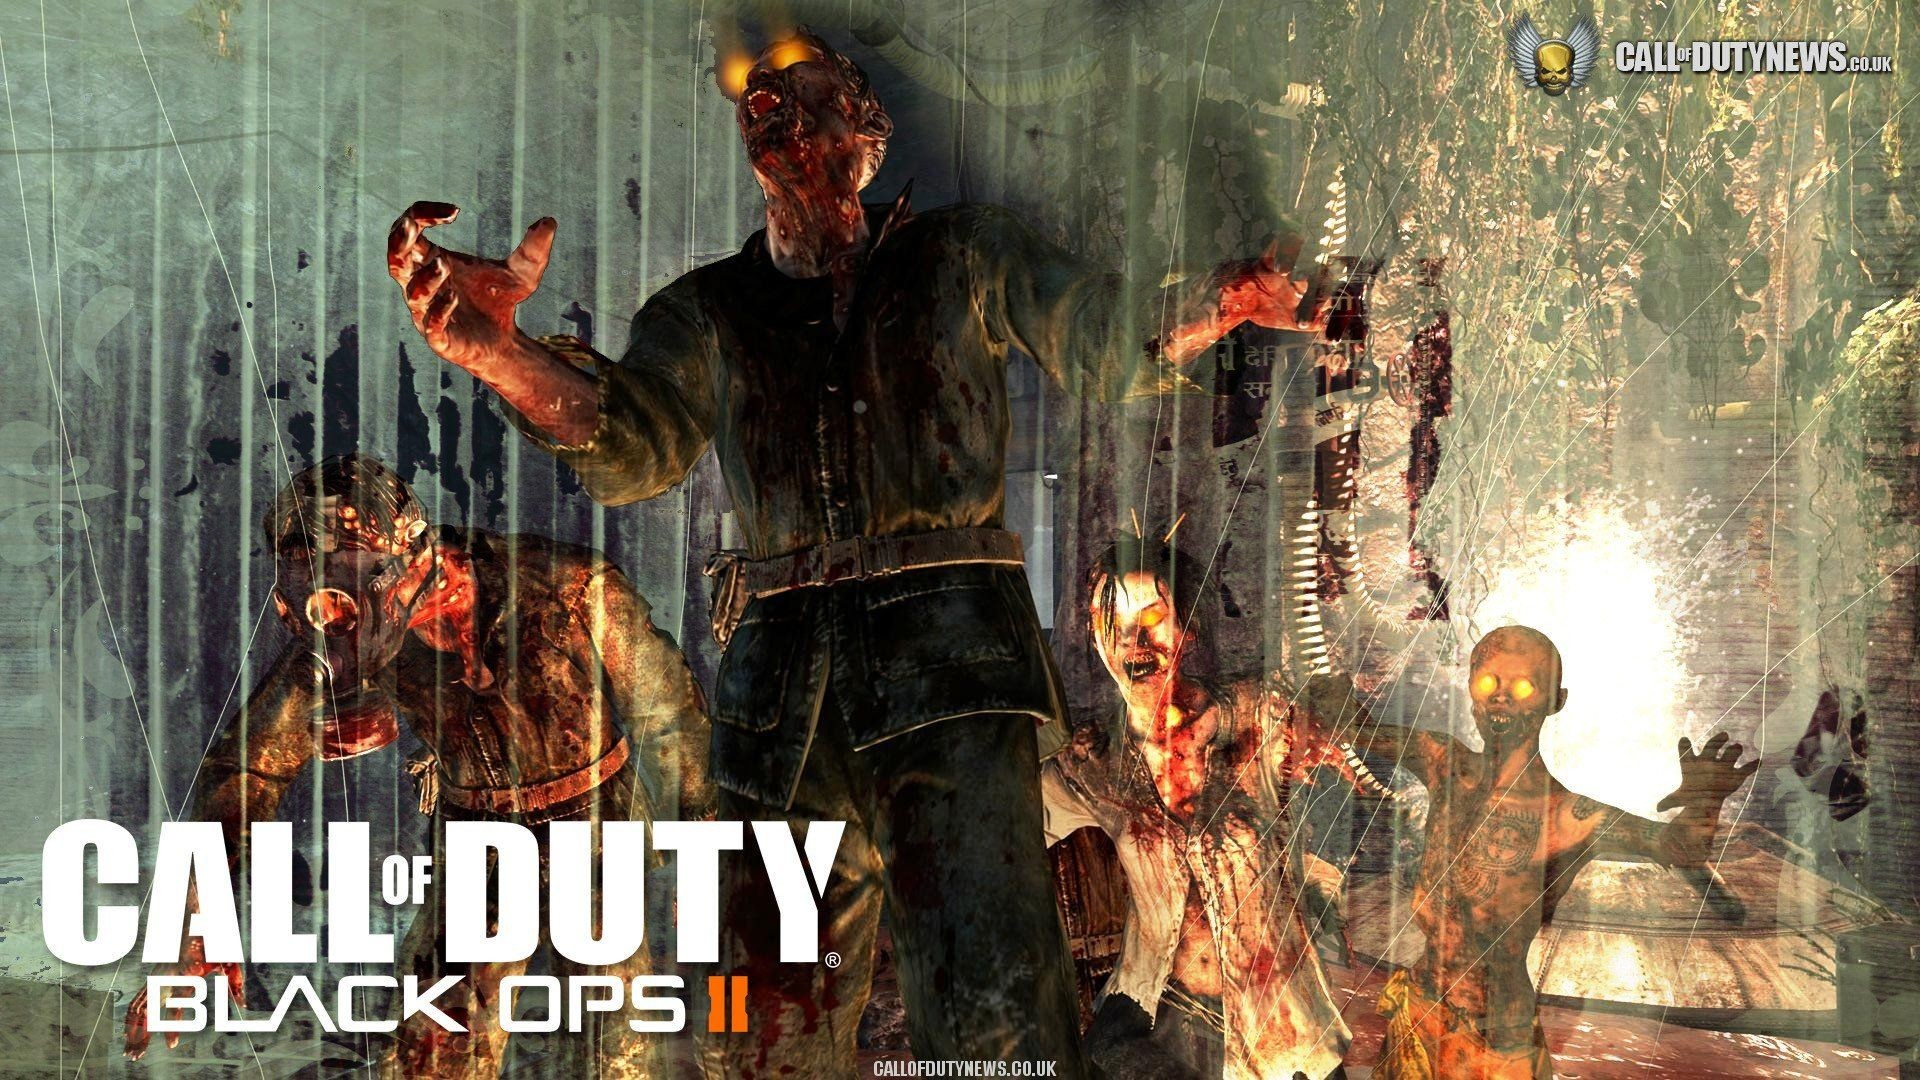 Call of duty zombies wallpapers SF